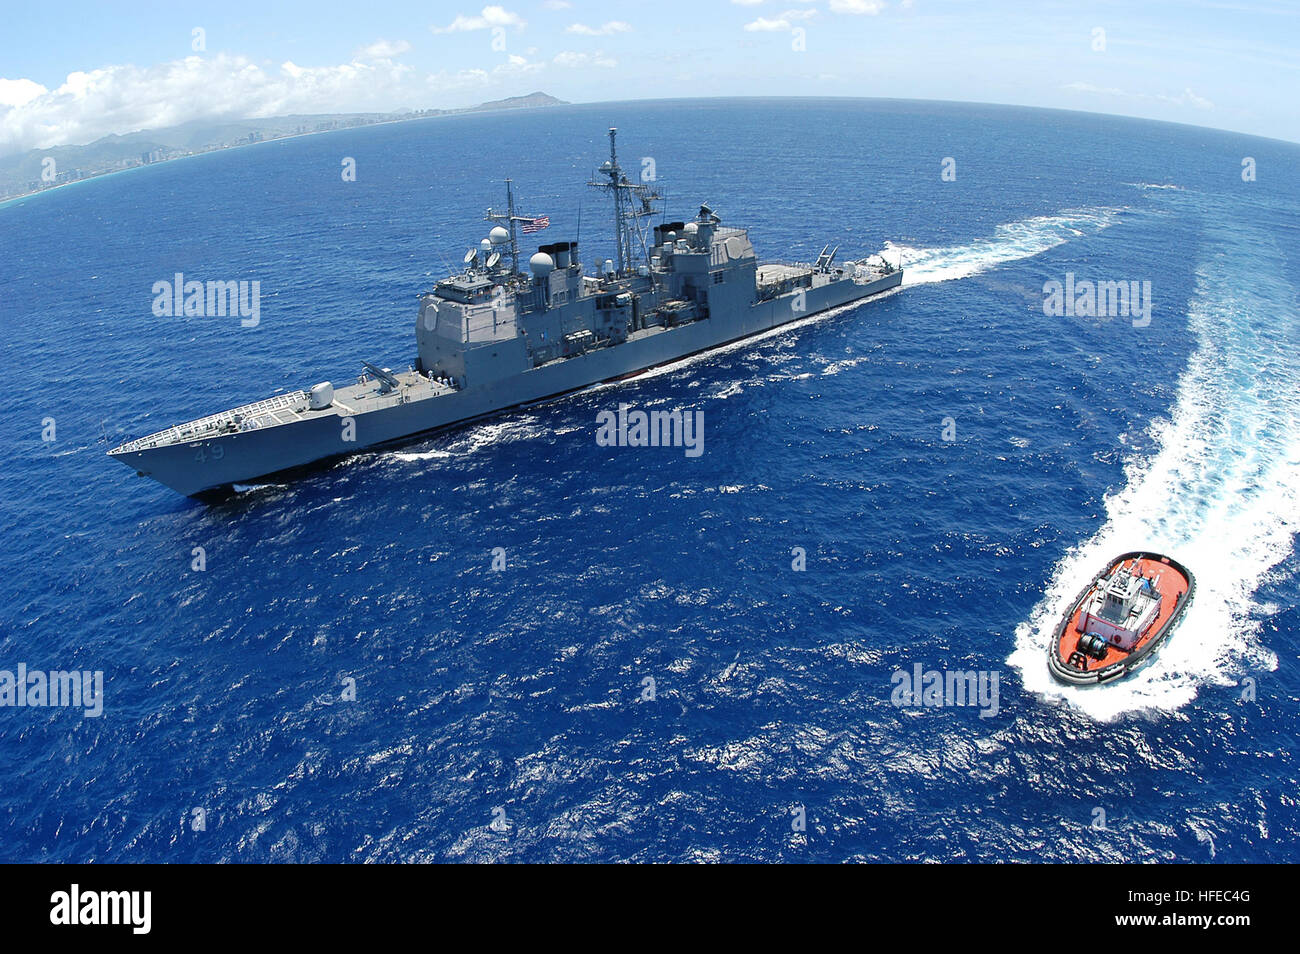 050415-N-8157F-036 Pearl Harbor, Hawaii (April 15, 2005)- The guided-missile cruiser USS Vincennes (CG 49) heads - Stock Image